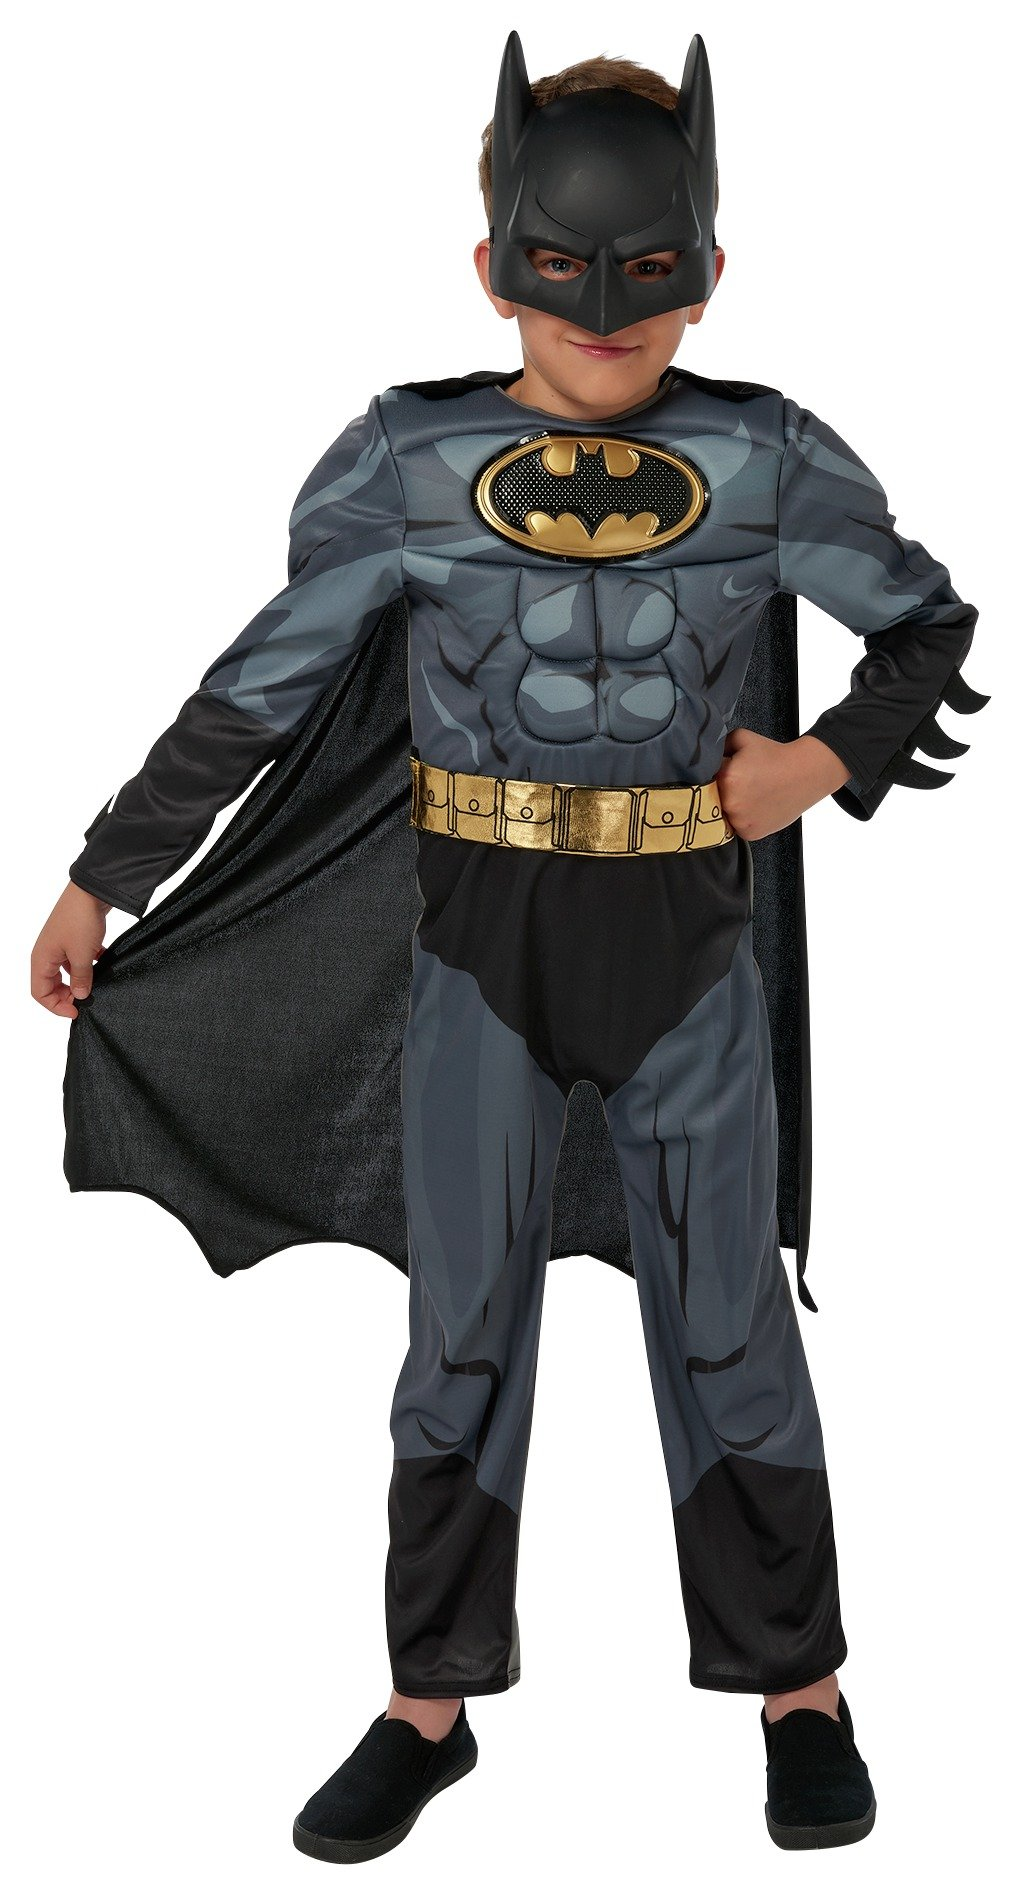 DC Batman Fancy Dress Costume - 7-8 Years